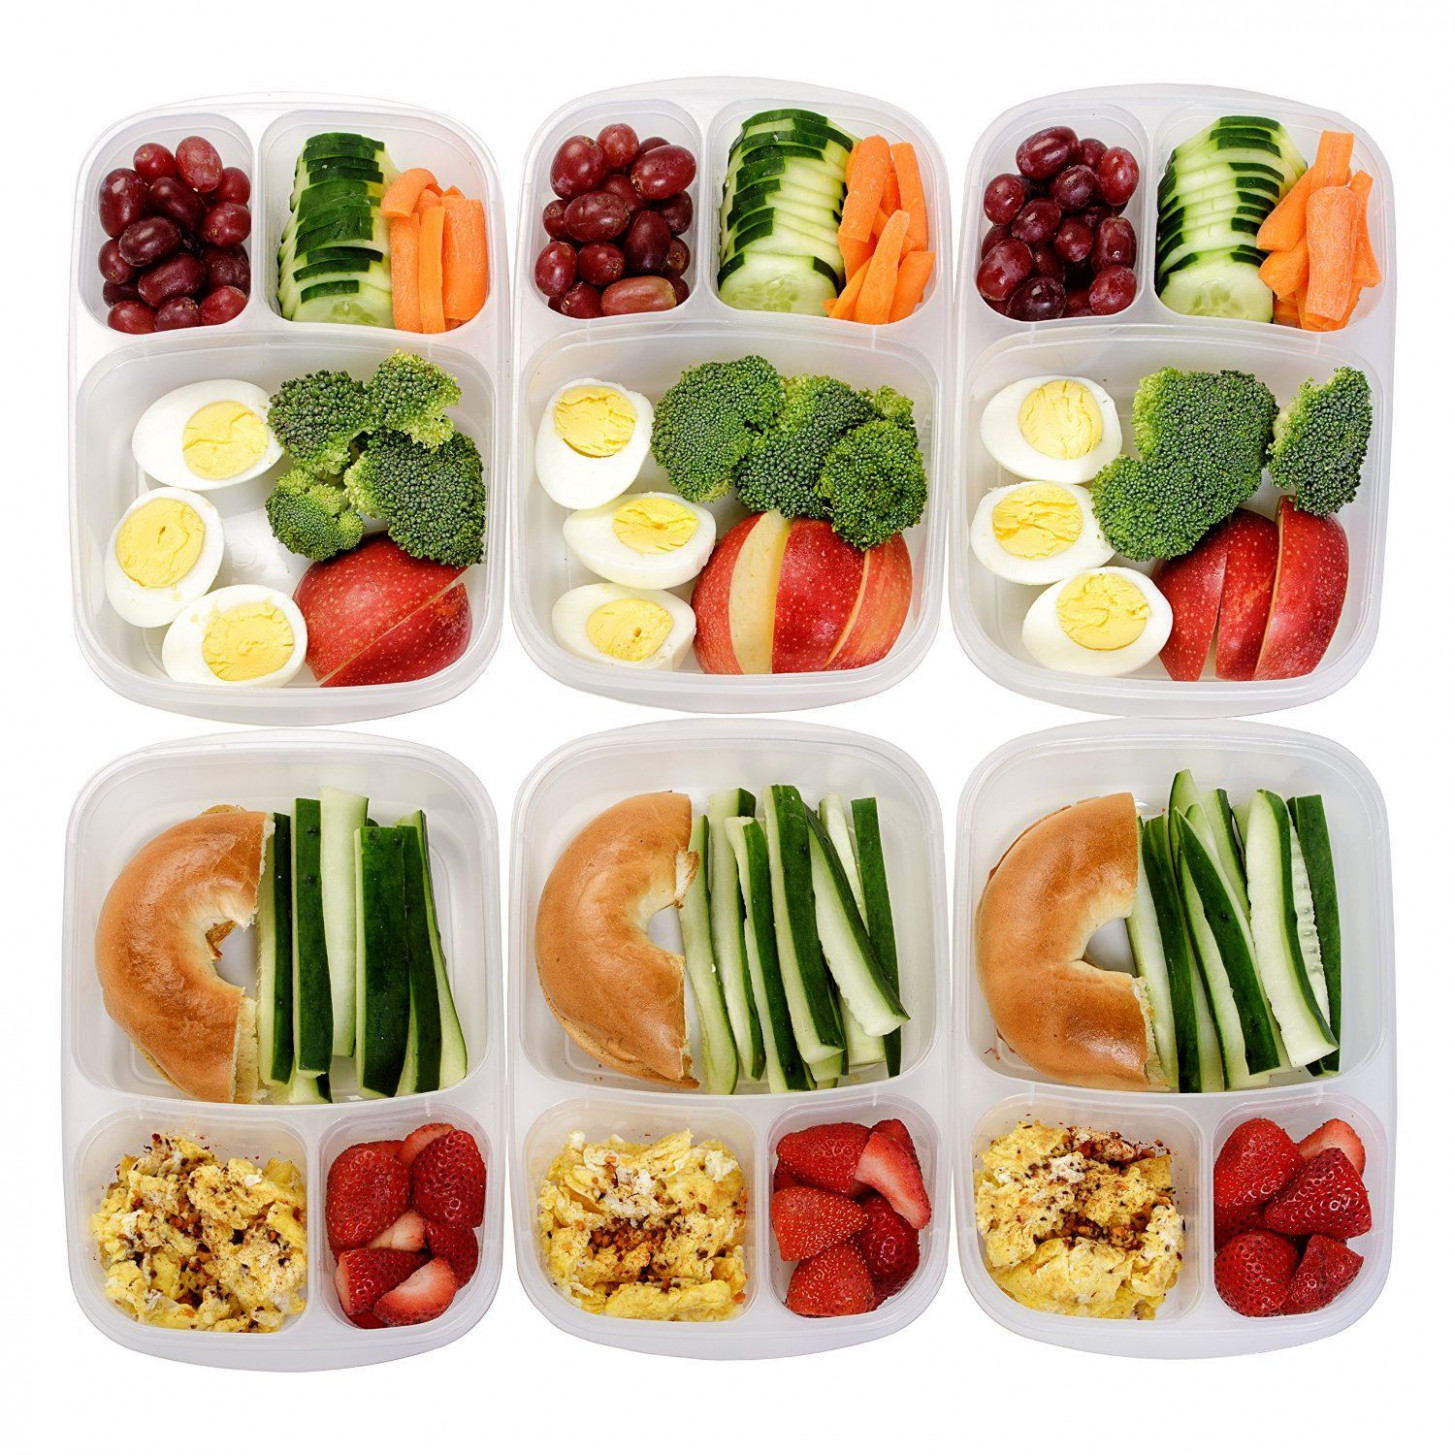 Healthy Meal Ideas To Lose Weight | Examples and Forms - dinner recipes to lose weight